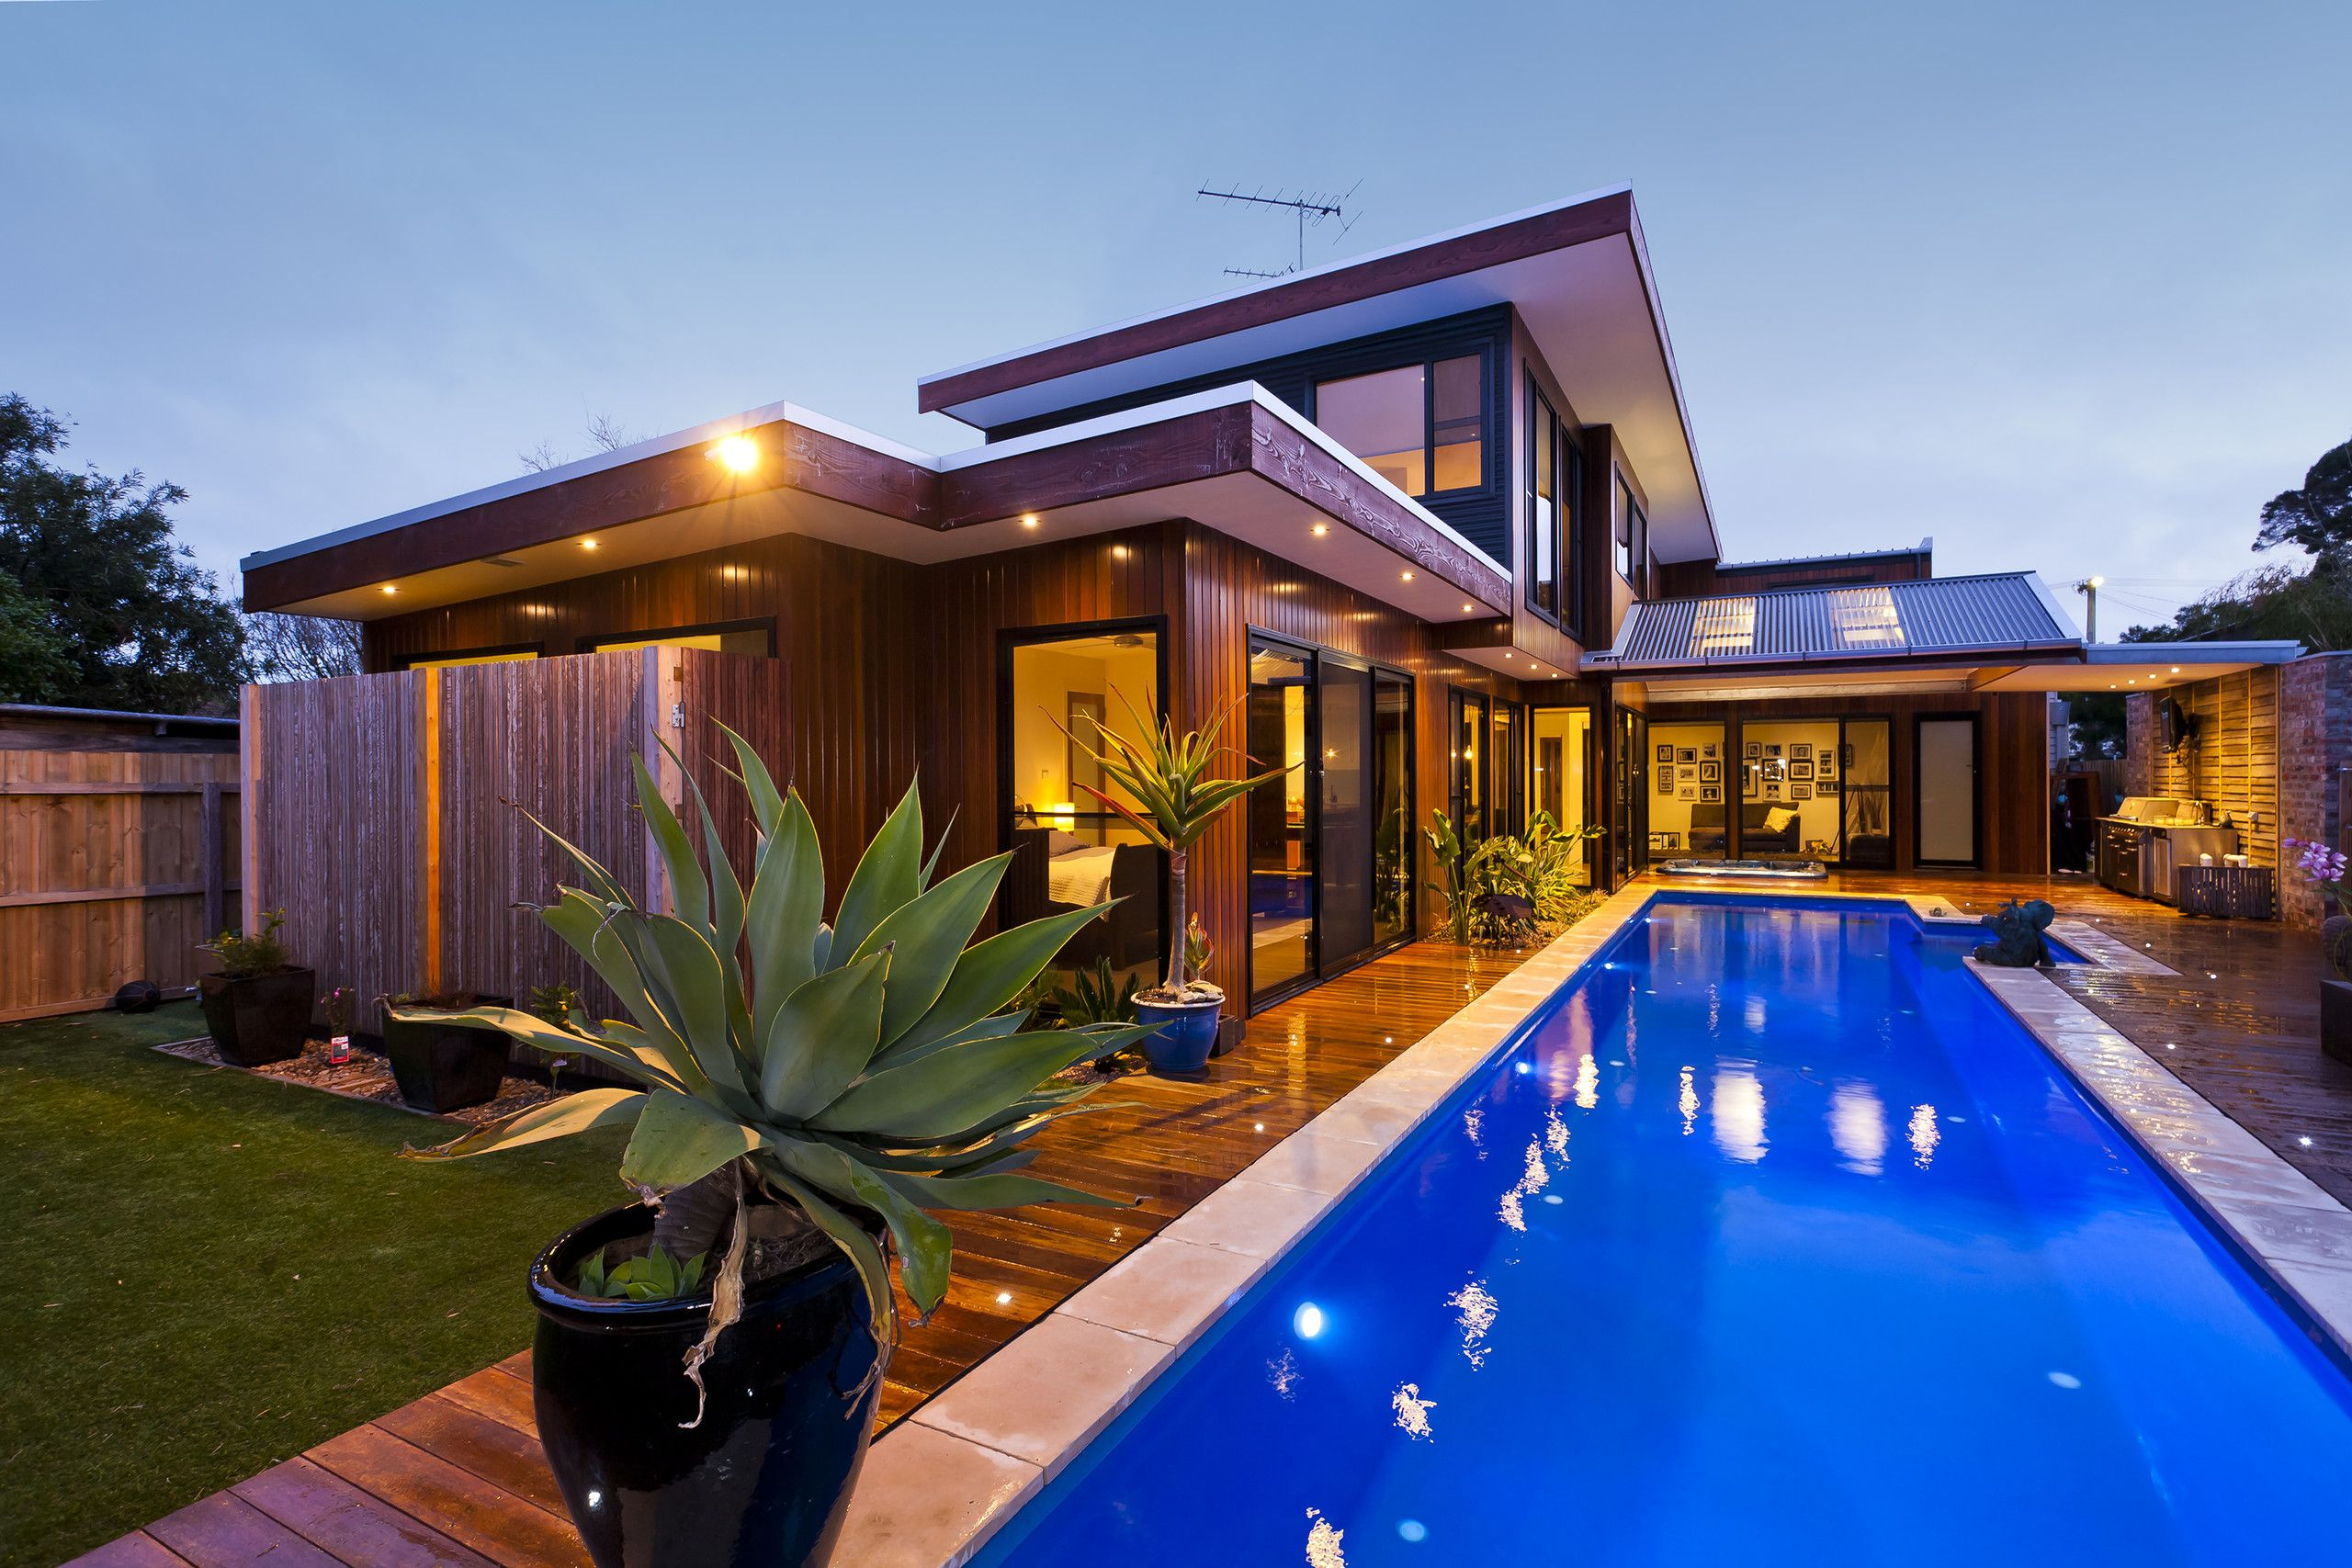 4 thorn street barwon heads built by a renowned local builder